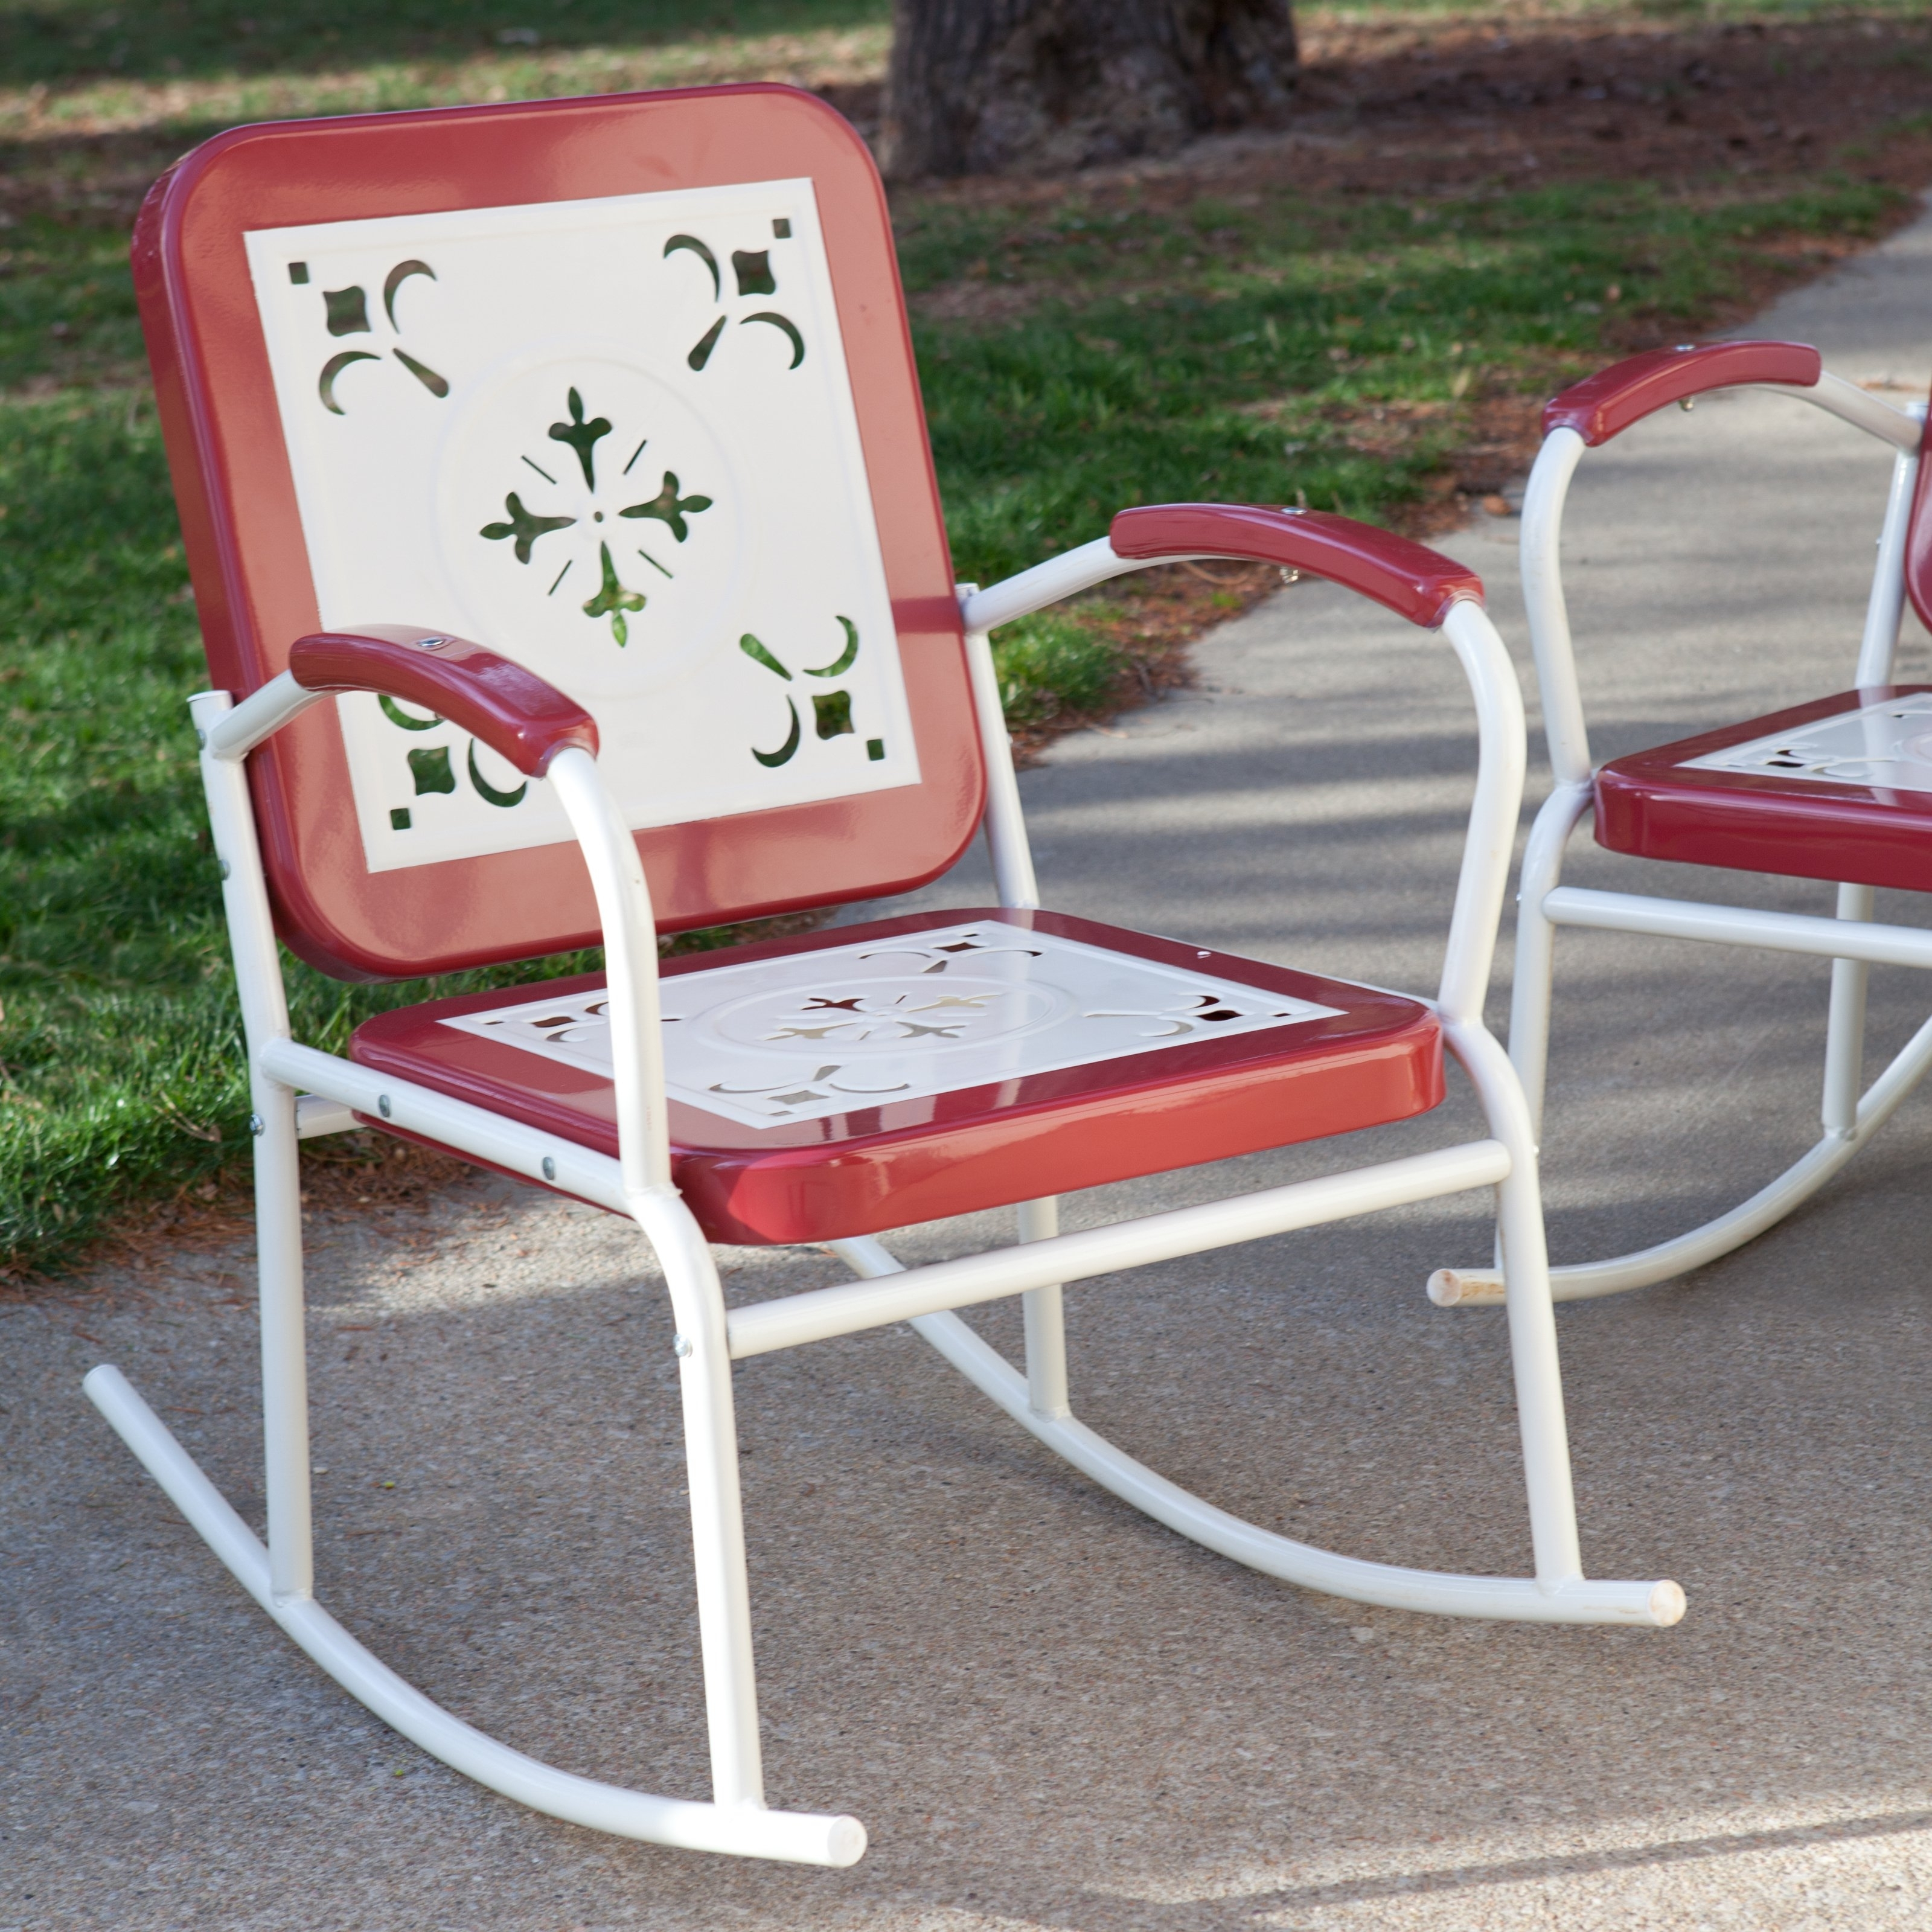 Retro Rocking Chairs Intended For Recent Coral Coast Paradise Cove Retro Metal Rocking Chairs – Set Of (View 5 of 20)